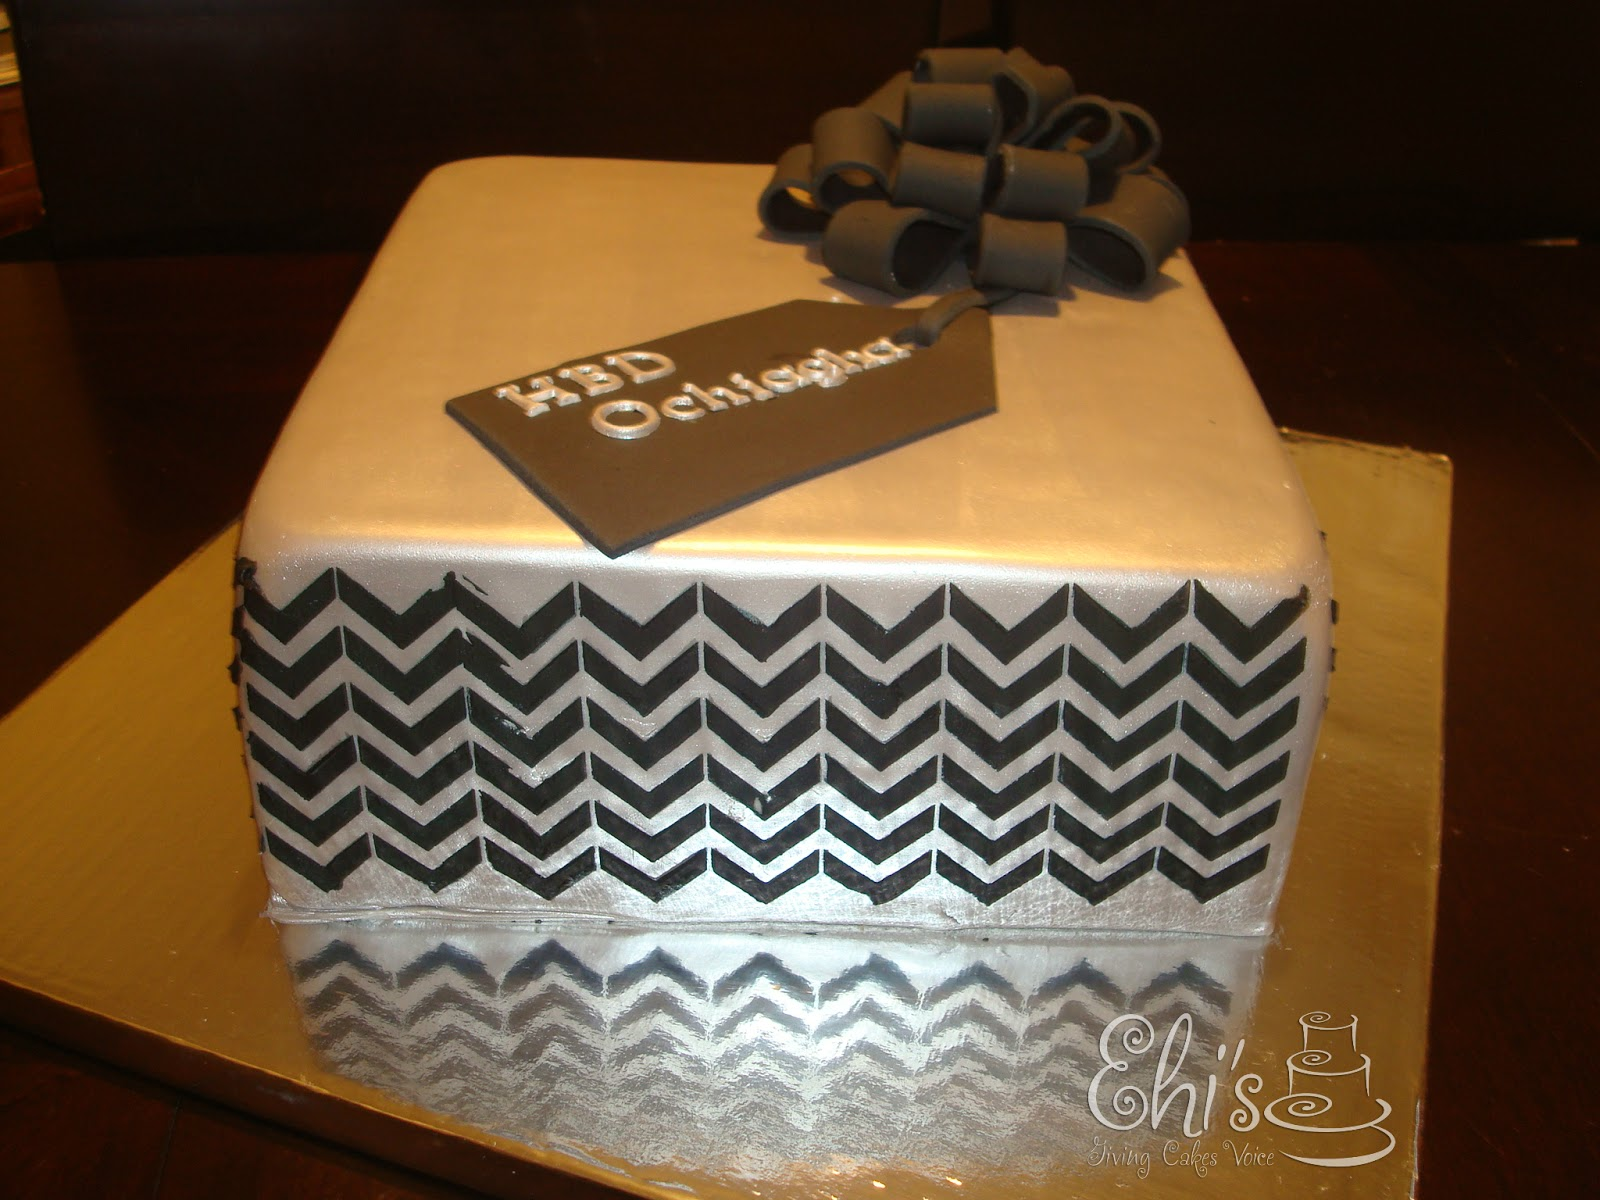 Square Cut Two Layer Cake